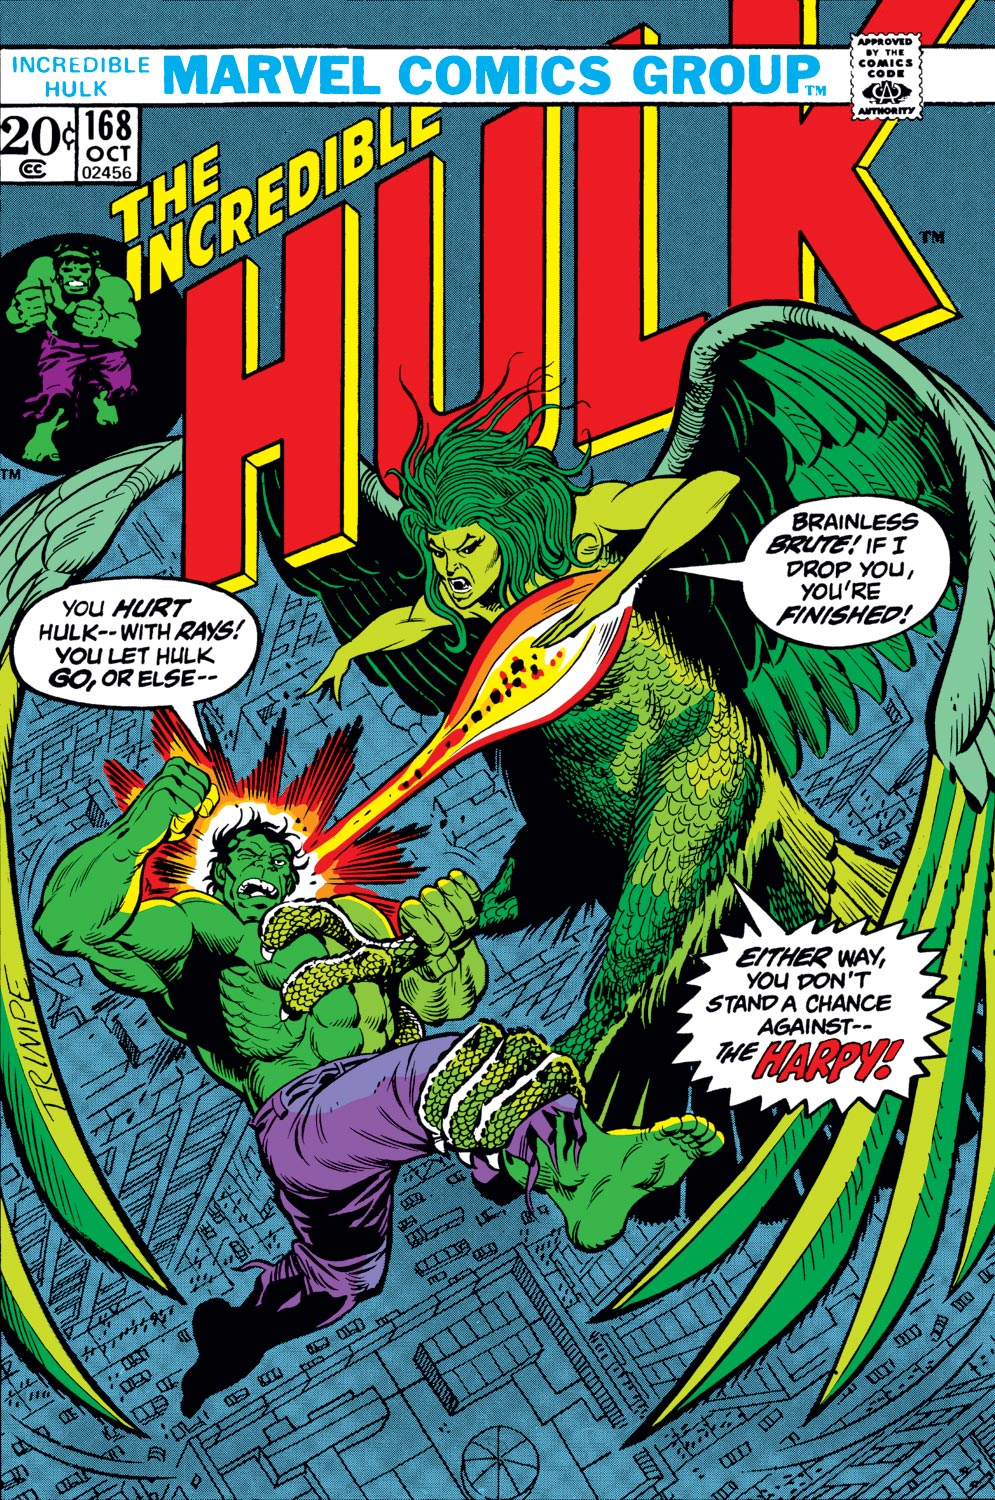 Incredible Hulk (1962) #168